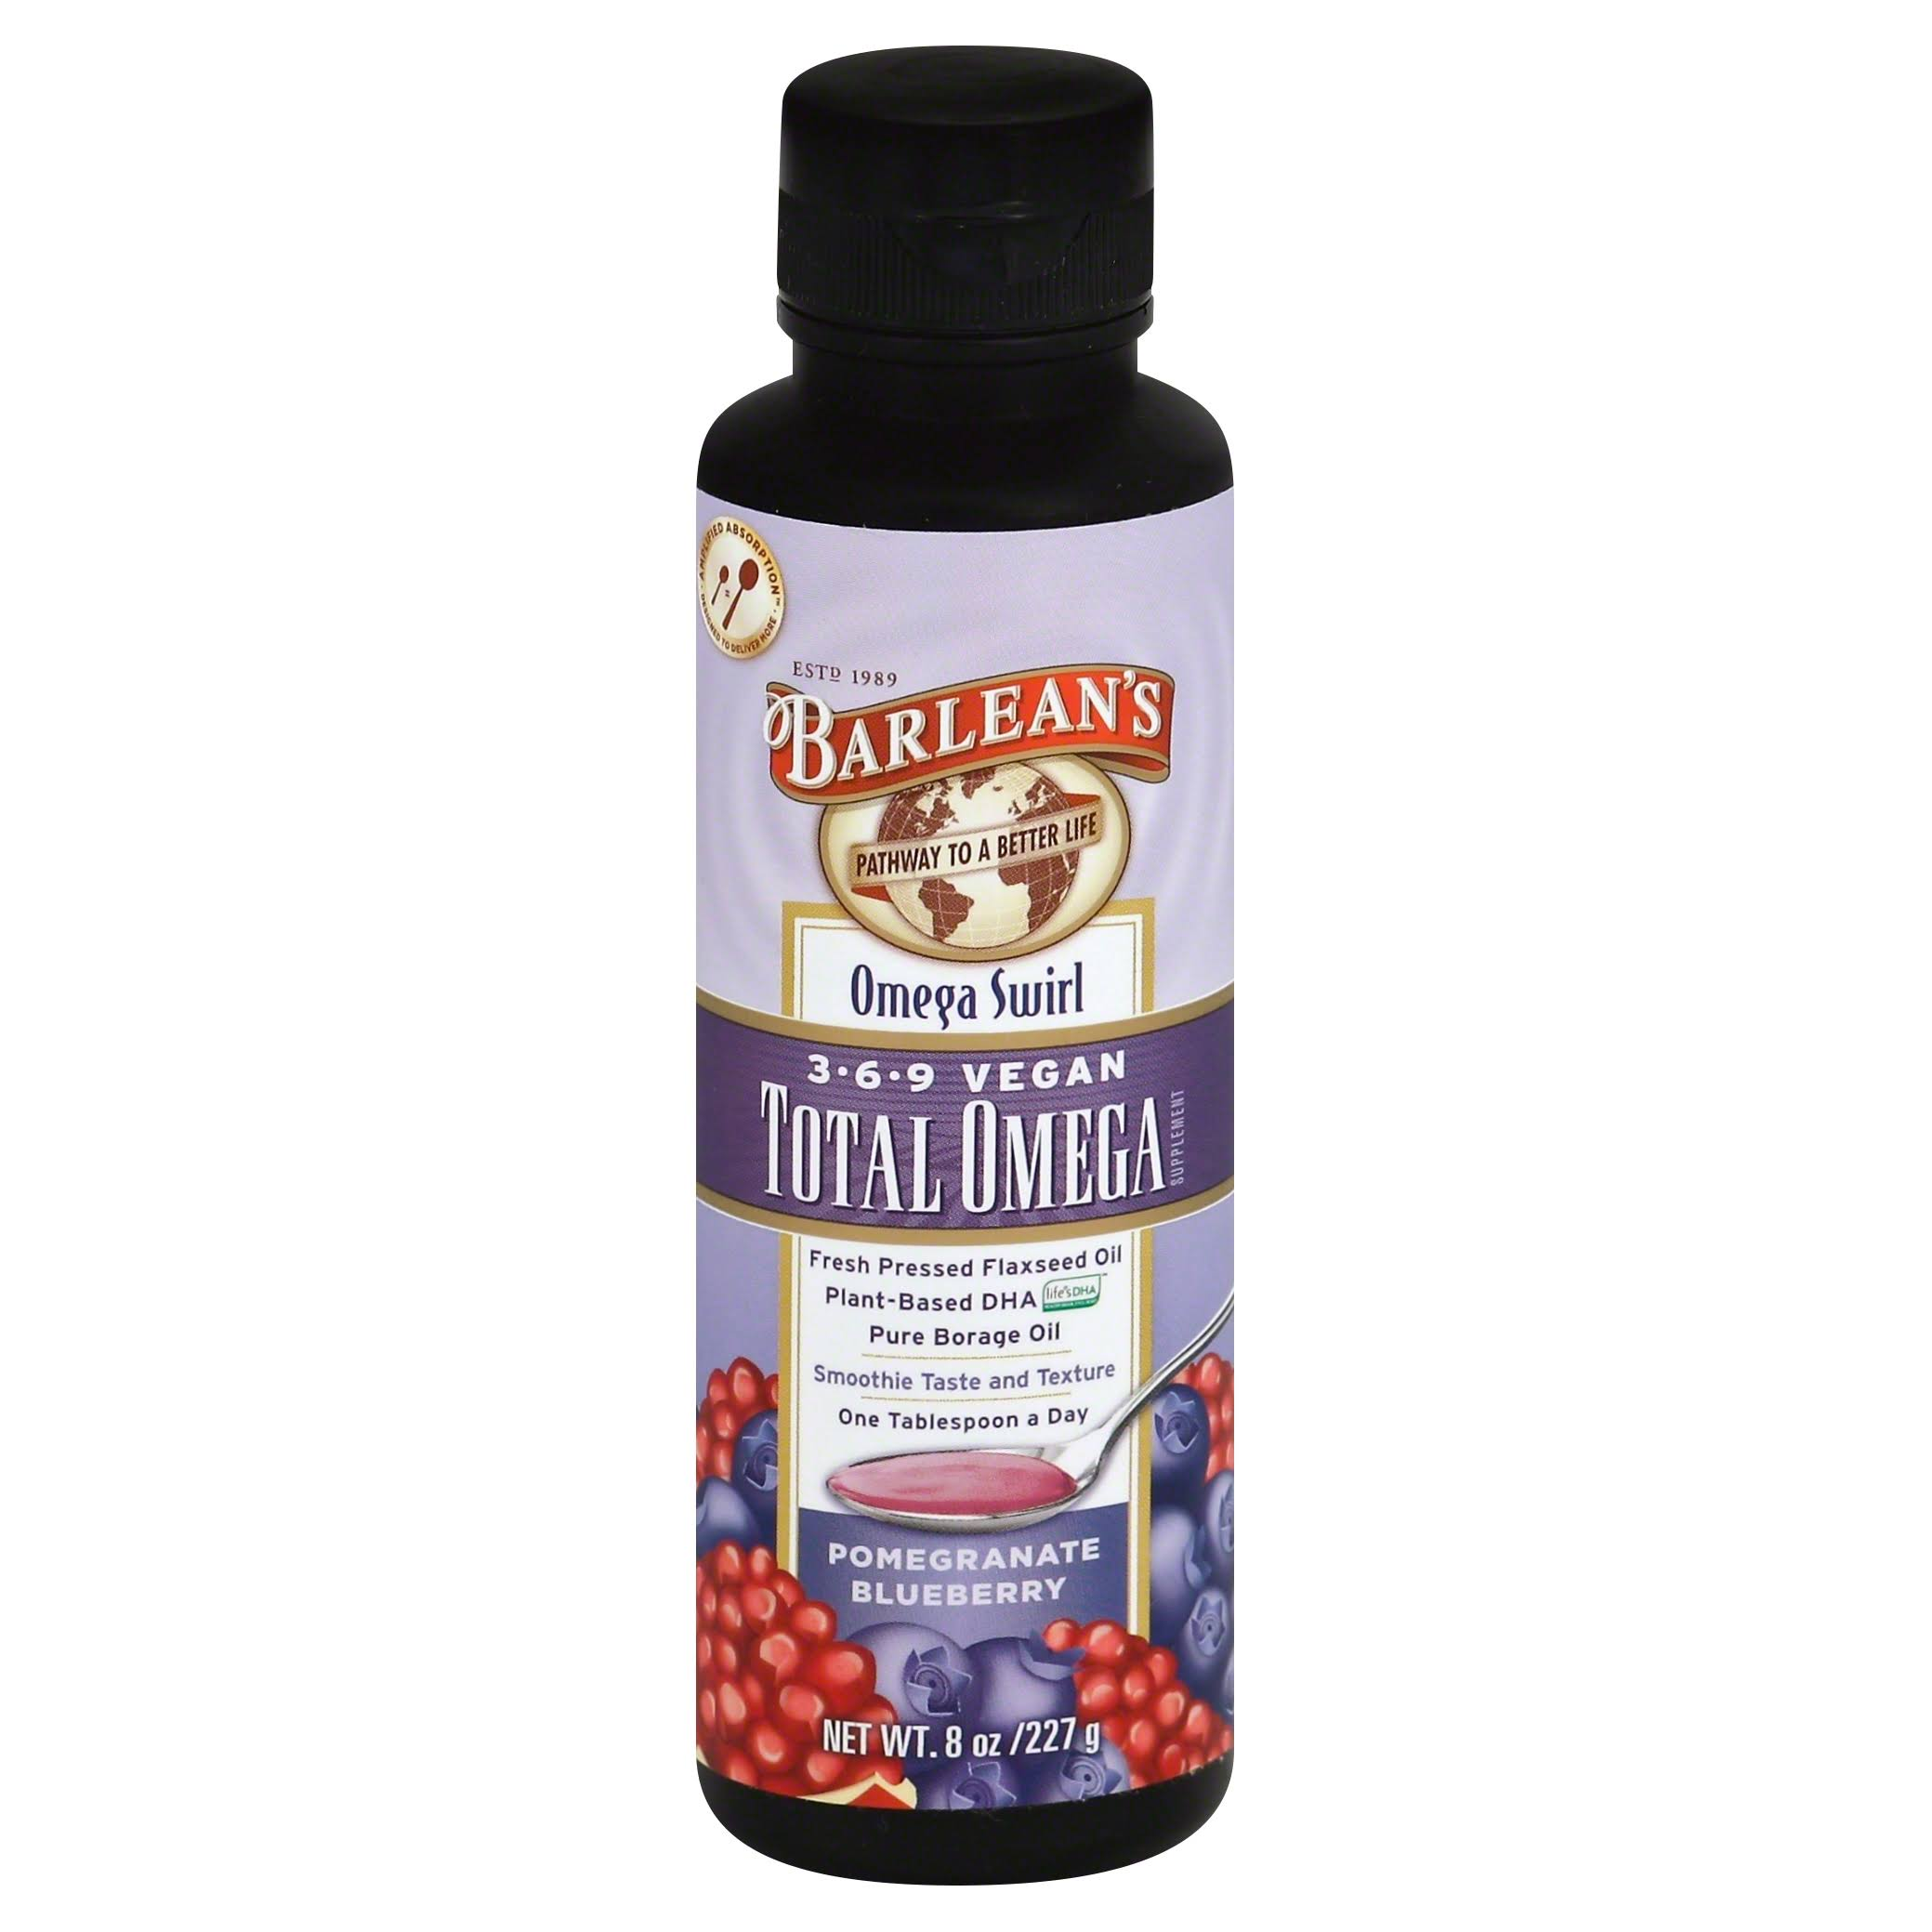 Barlean's Total Omega Vegan Swirl, Pomegranate Blueberry - 8 oz bottle